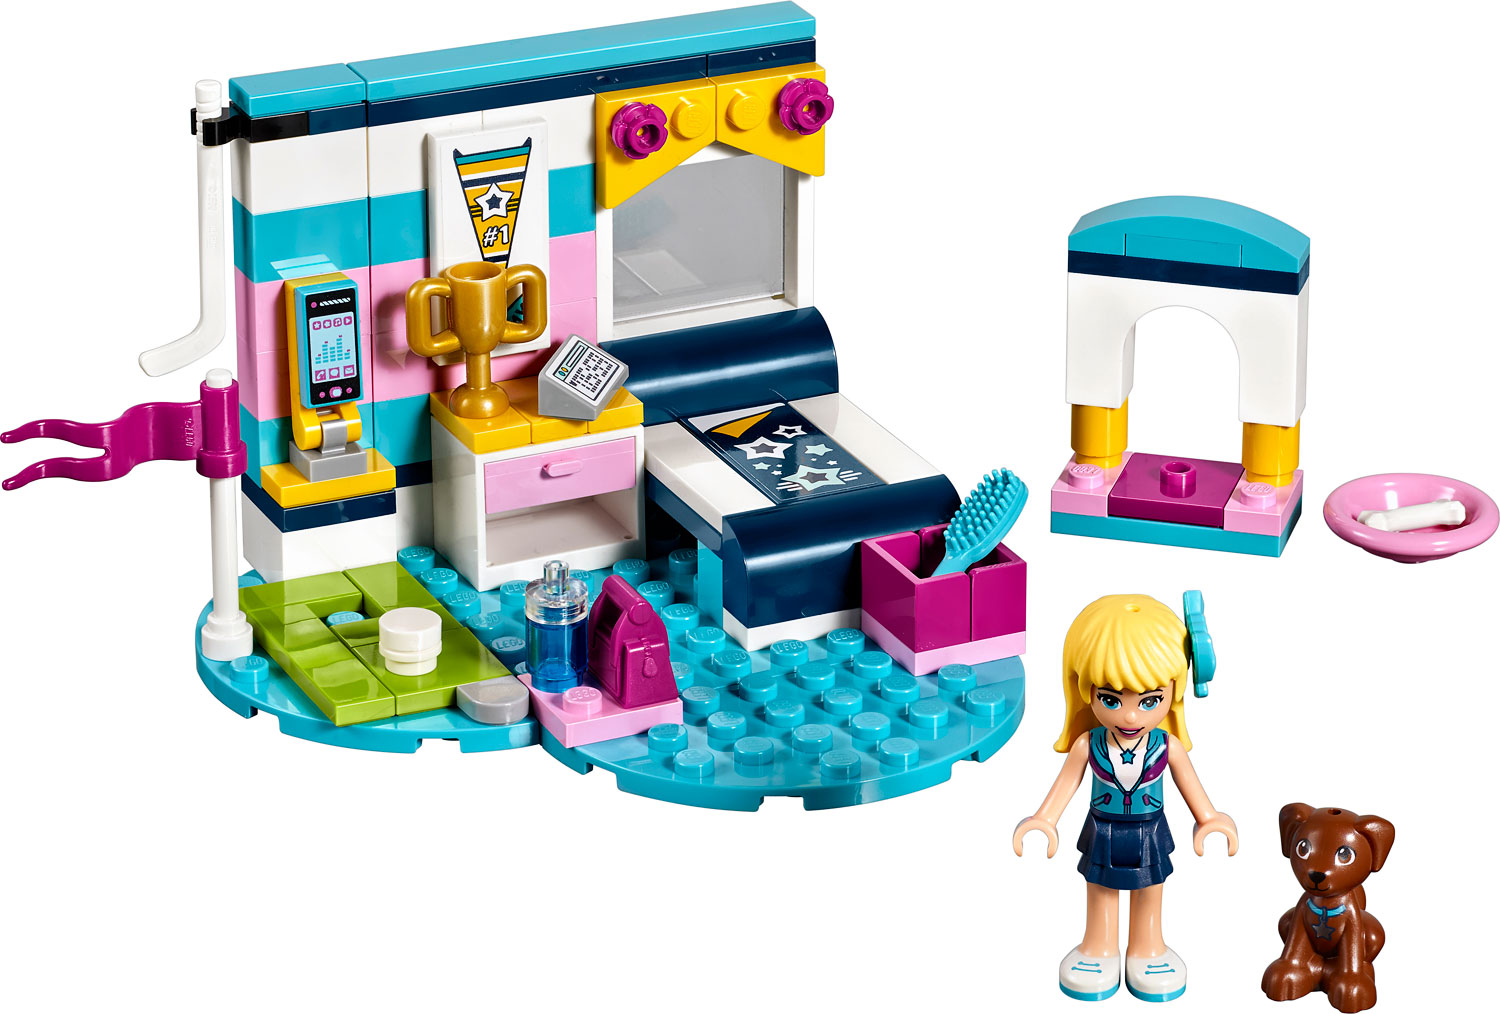 Lego Friends Stephanies Bedroom Imagine That Toys